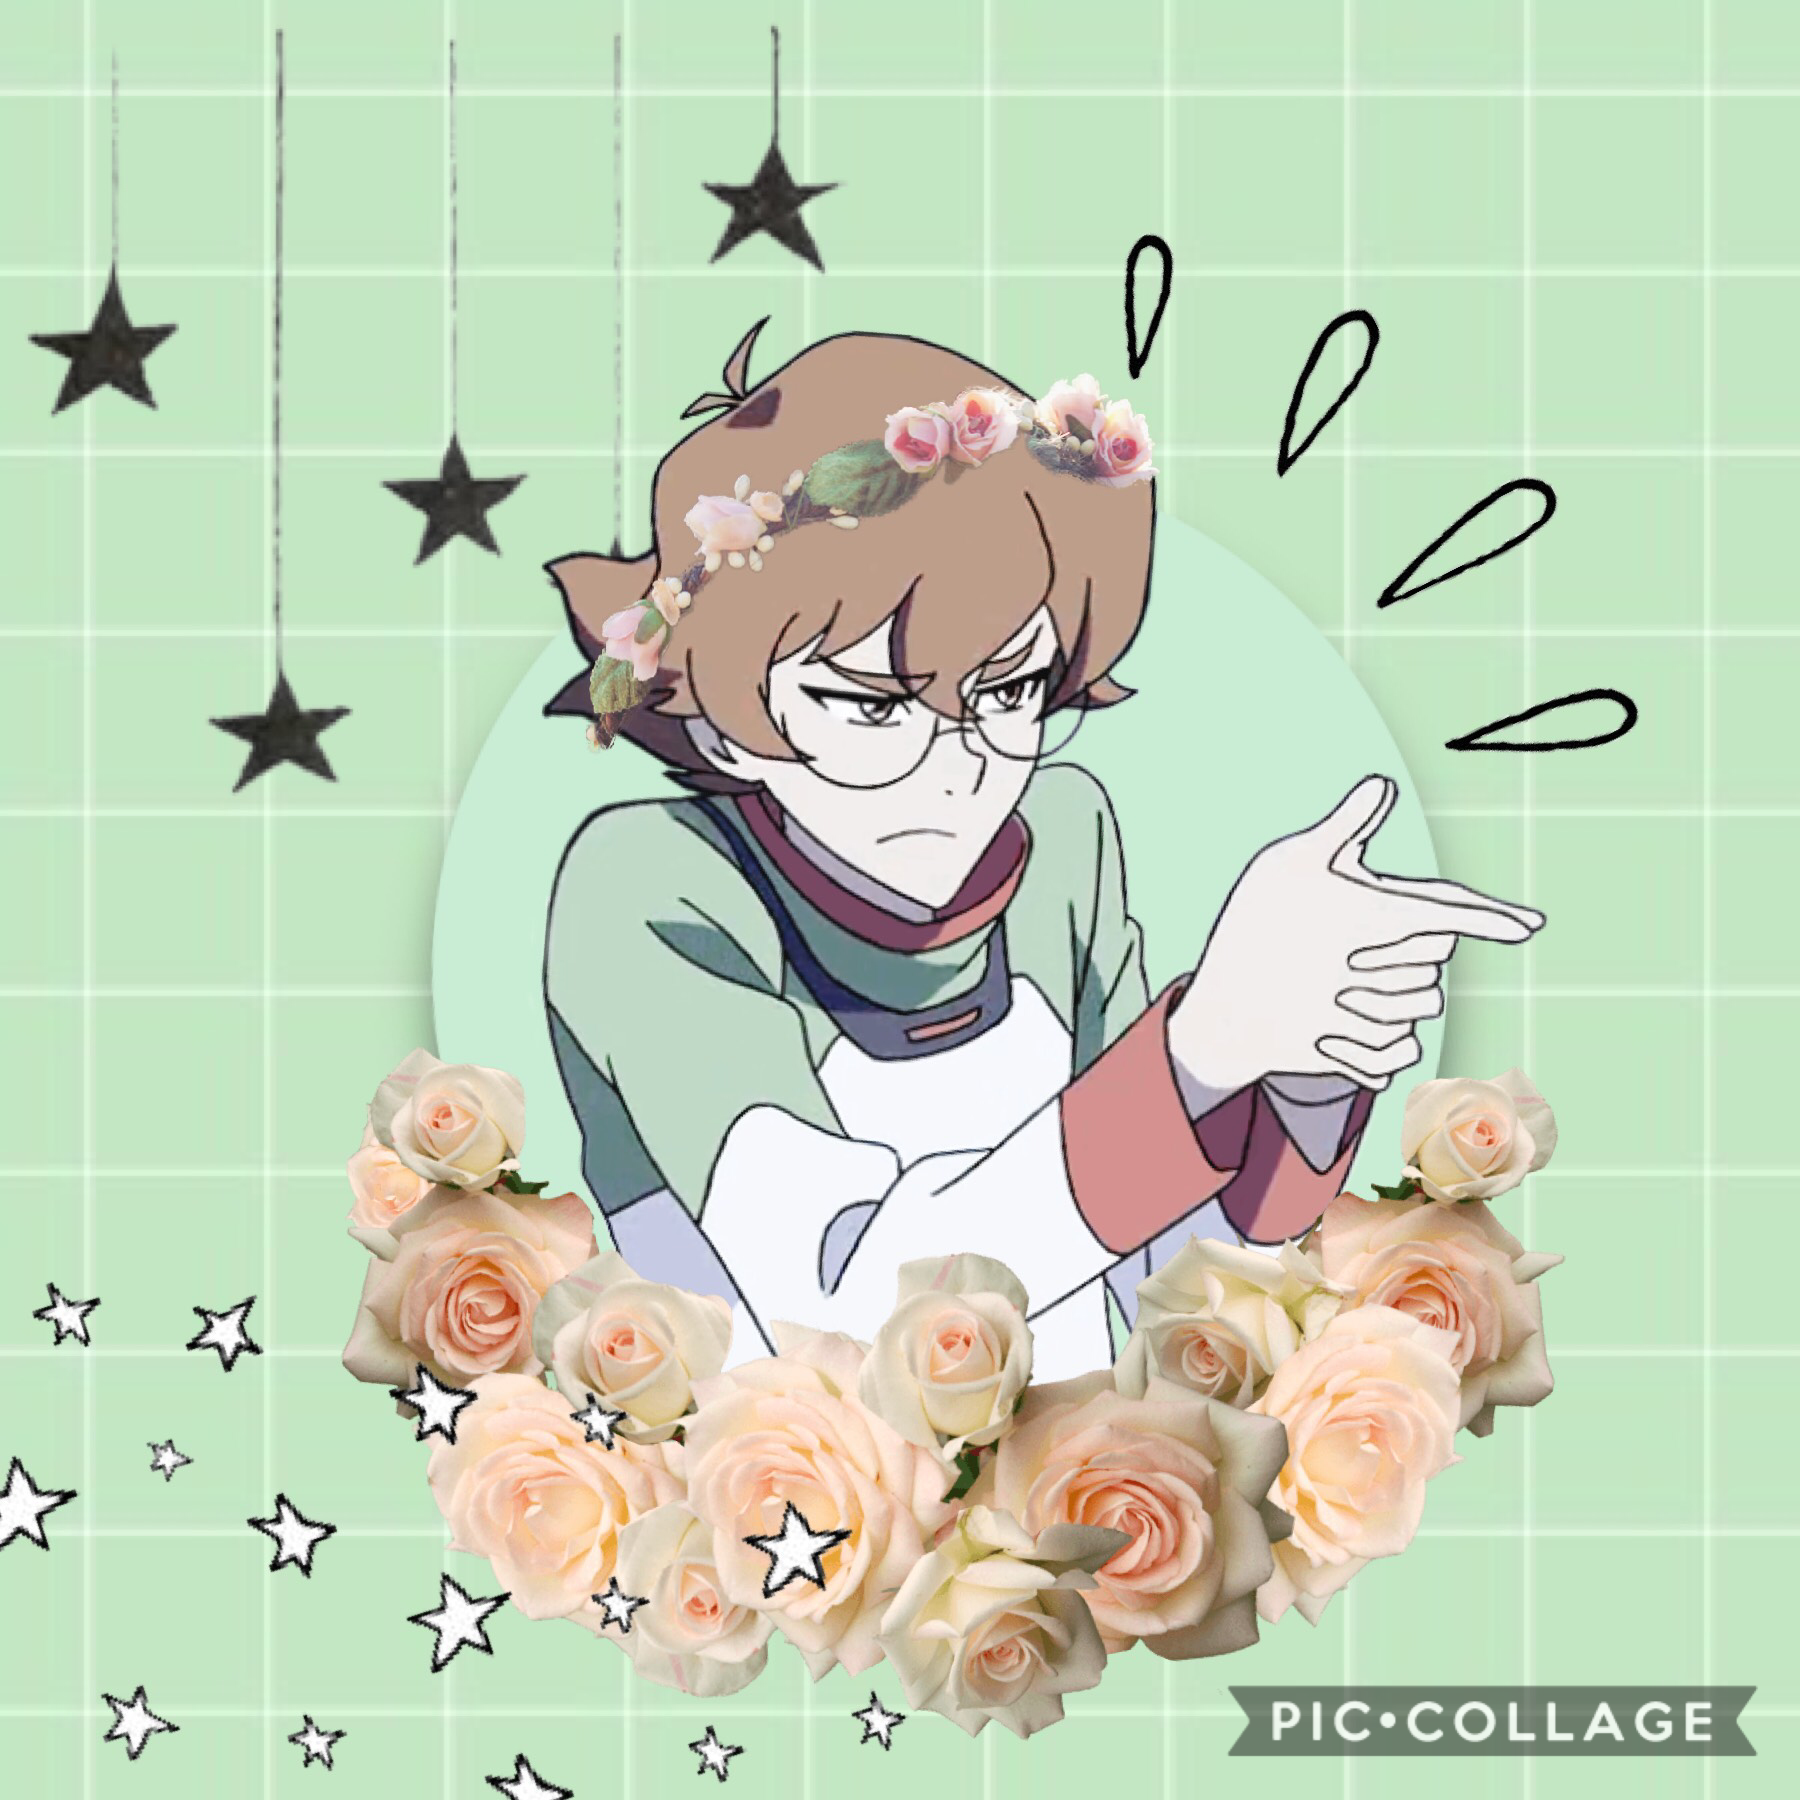 editing with just PC! tap! edit of pidge gunderson, feel free to collect and of the pngs, i made this JUST by using pc, and i'm pretty proud lol ☆〜(ゝ。∂)